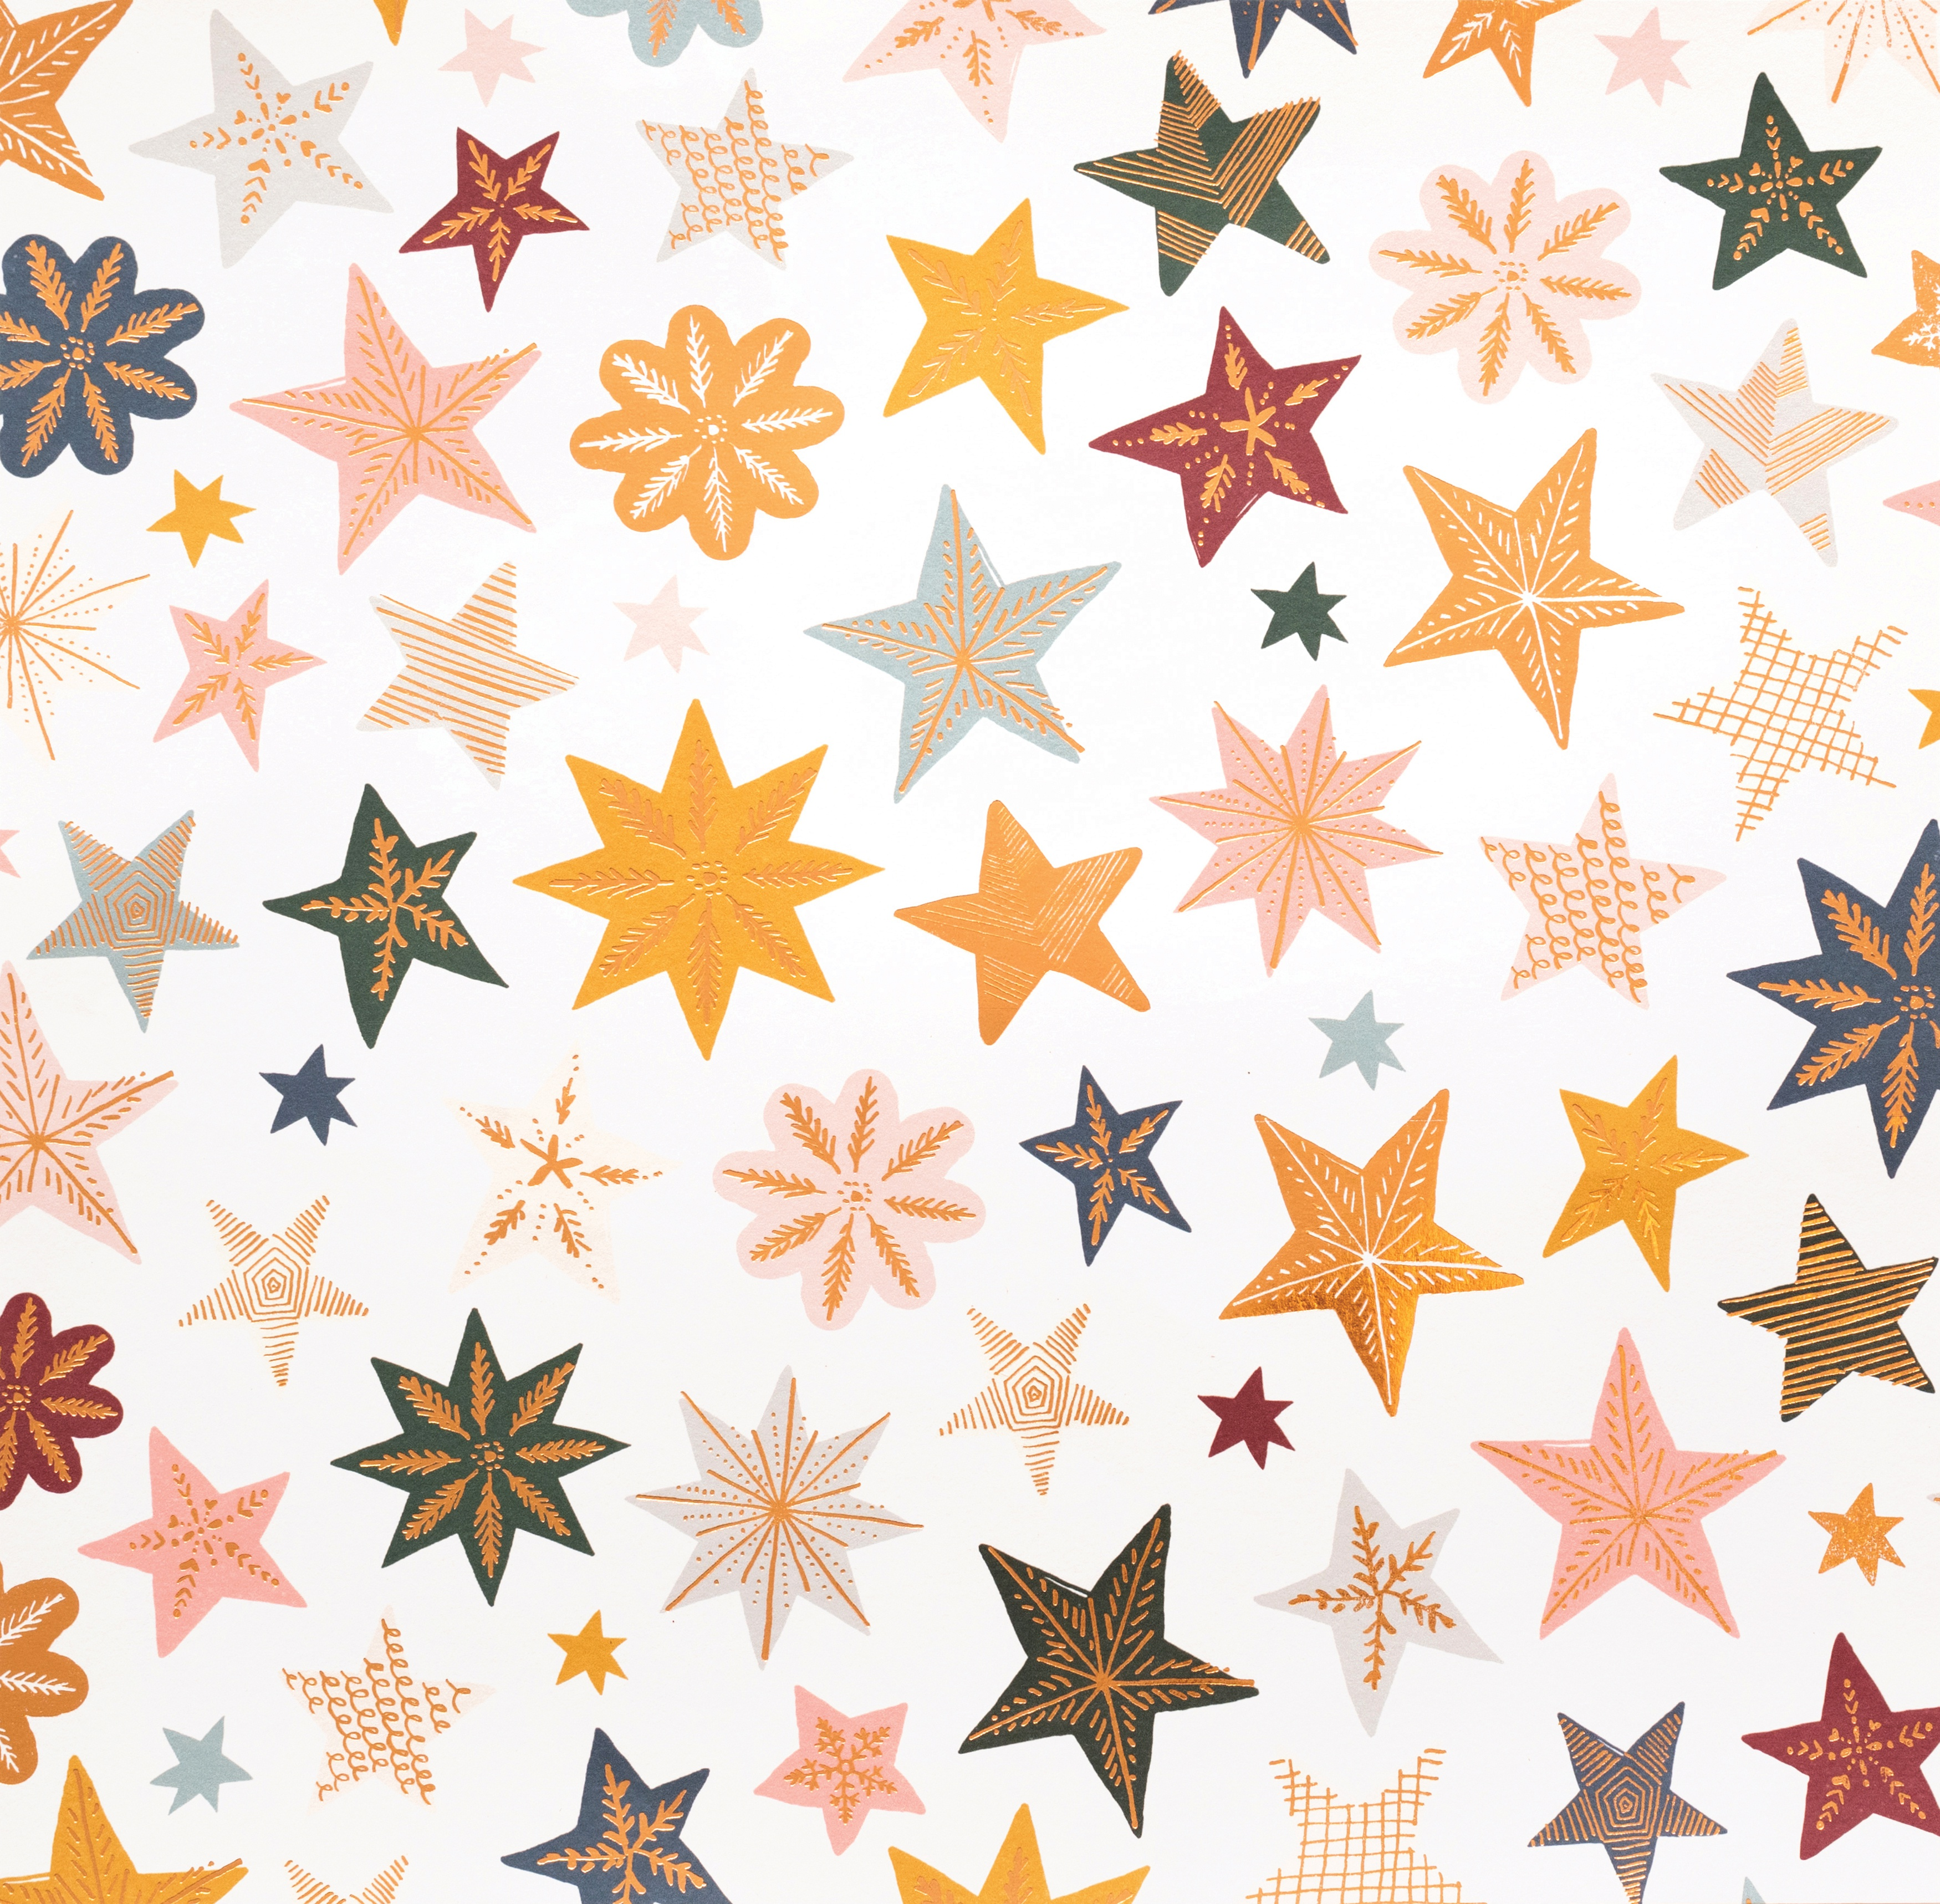 Snowflake Double-Sided Foiled Cardstock 12X12-Joyous W/Copper Foil